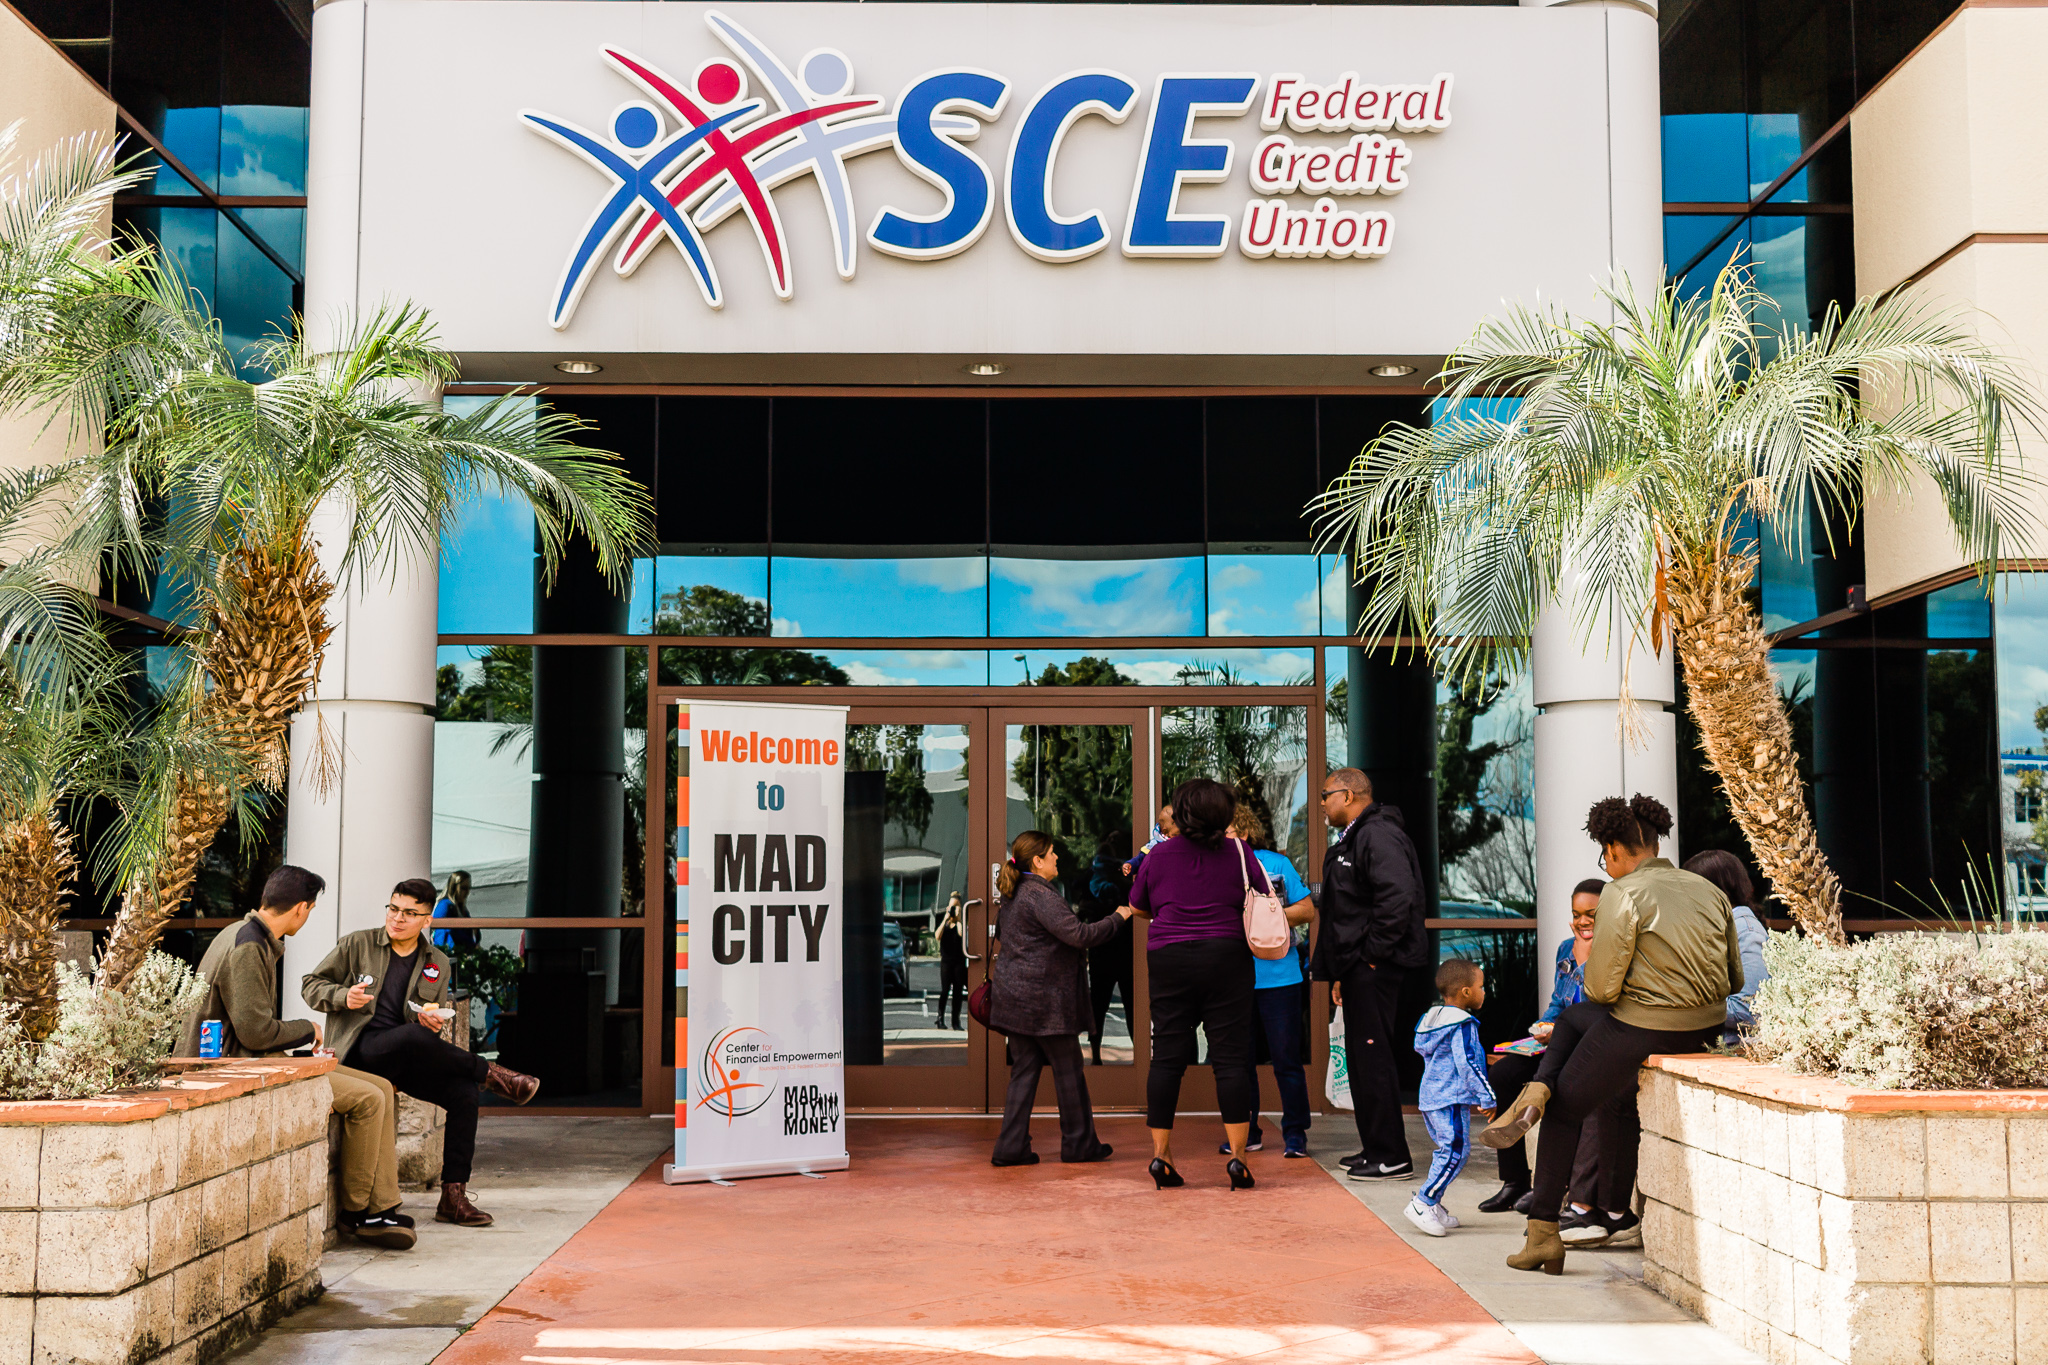 Building with SCE FCU logo